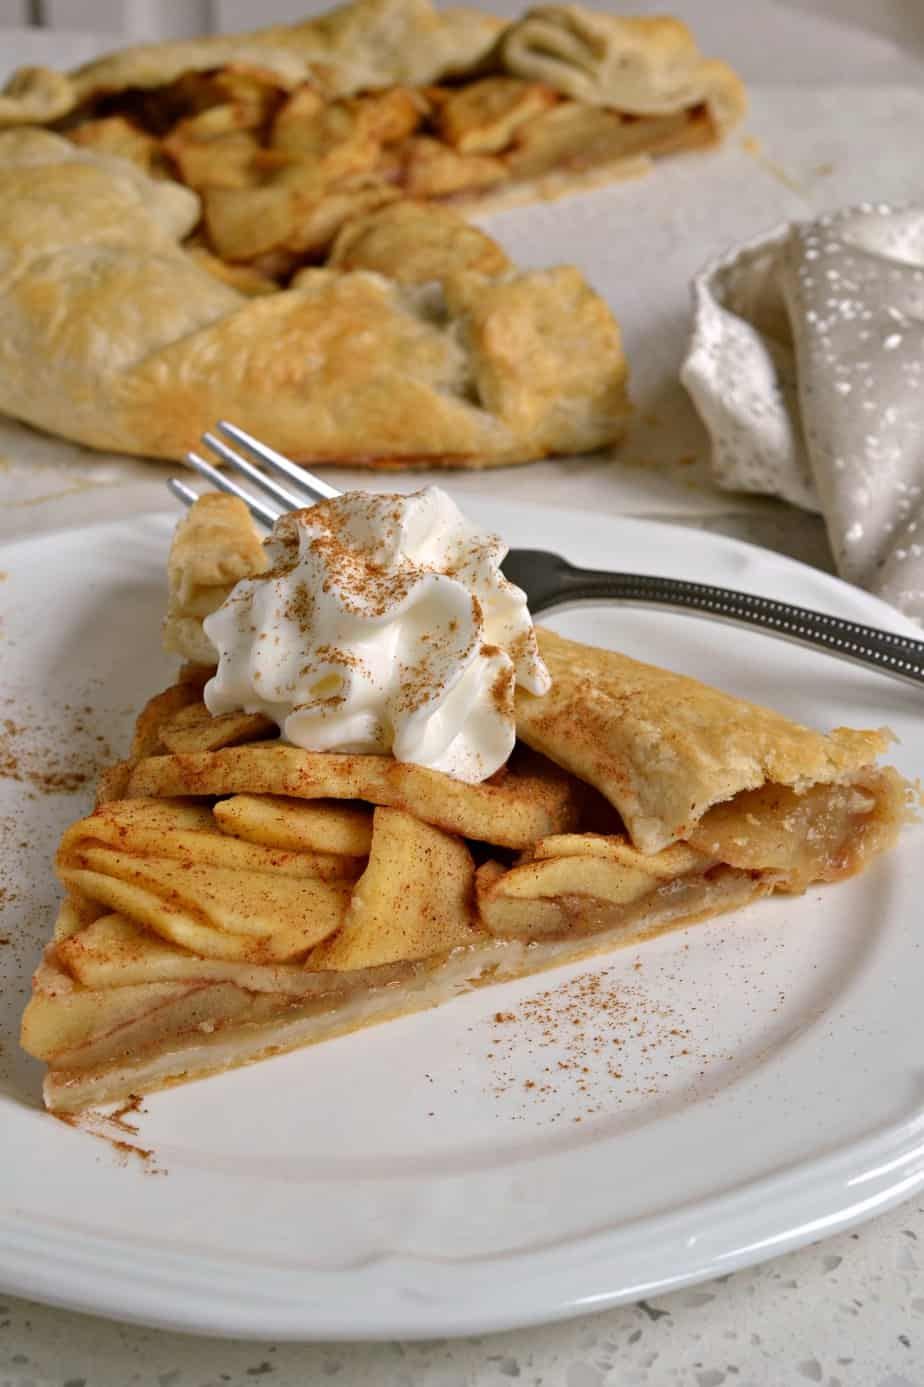 This scrumptious Apple Galette will get you in the mood for autumn with a four ingredient crust, apples, and fall spices.